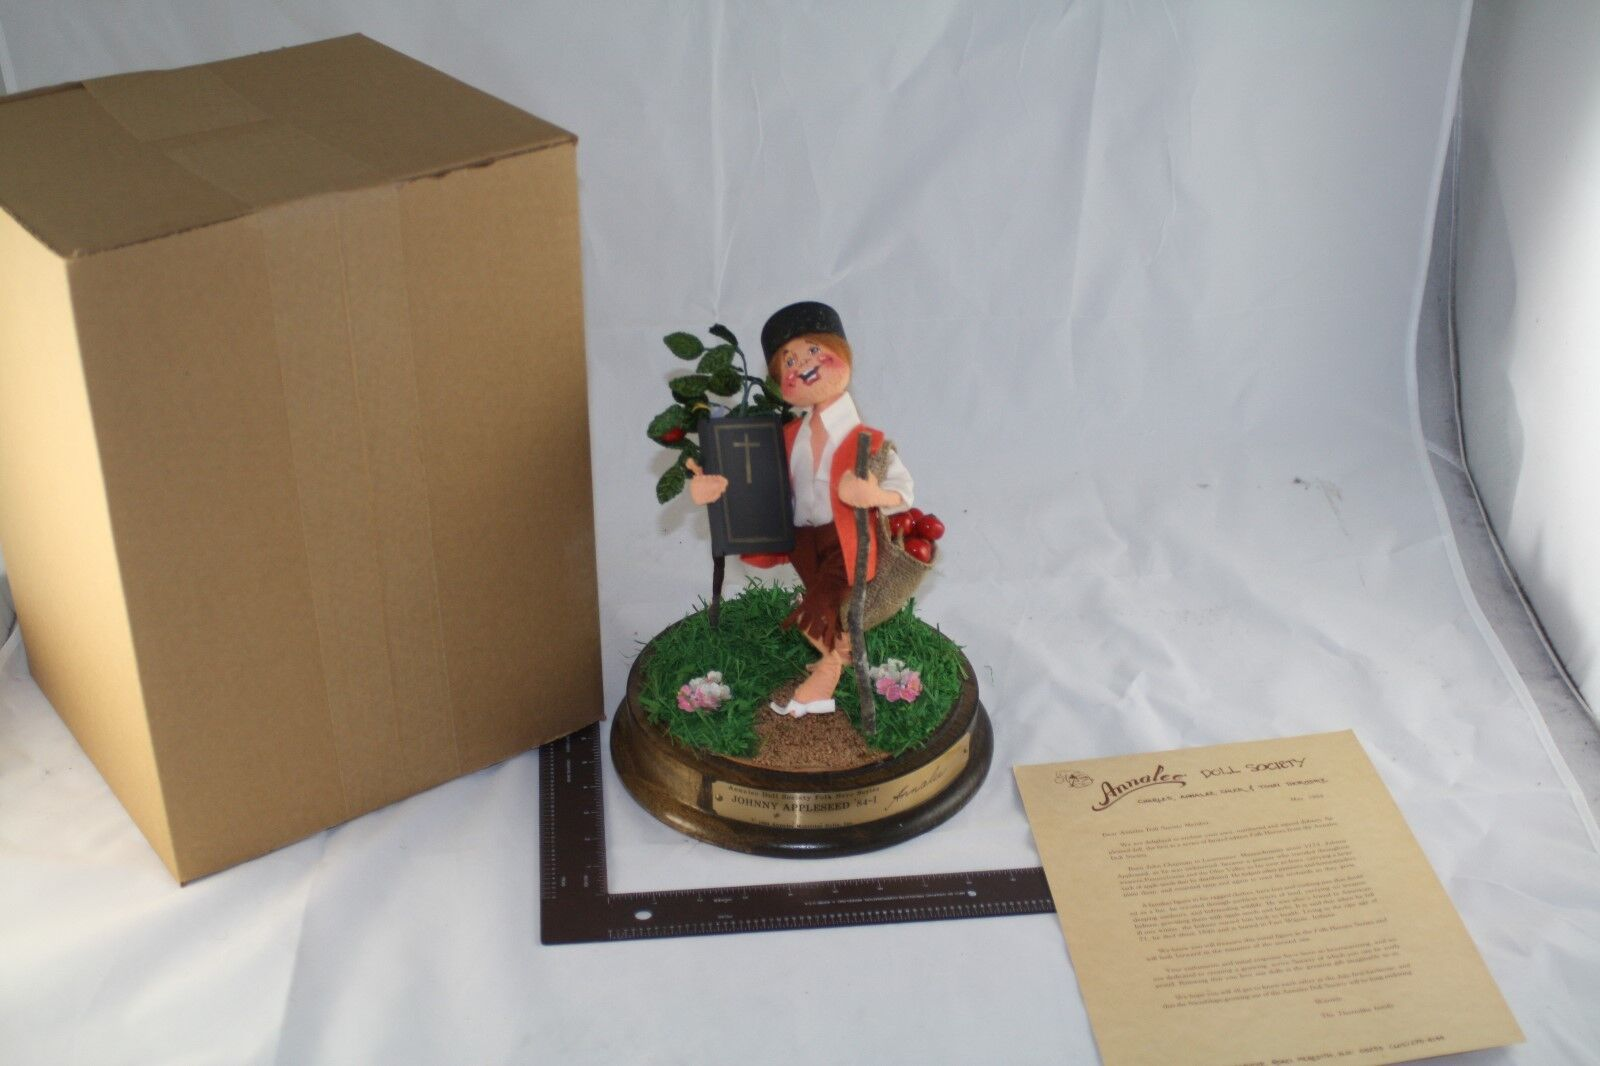 1984 ANNALEE JOHNNY APPLESEED FIGURINE DOLL GLASS DOME NUMBErot SIGNED NOS